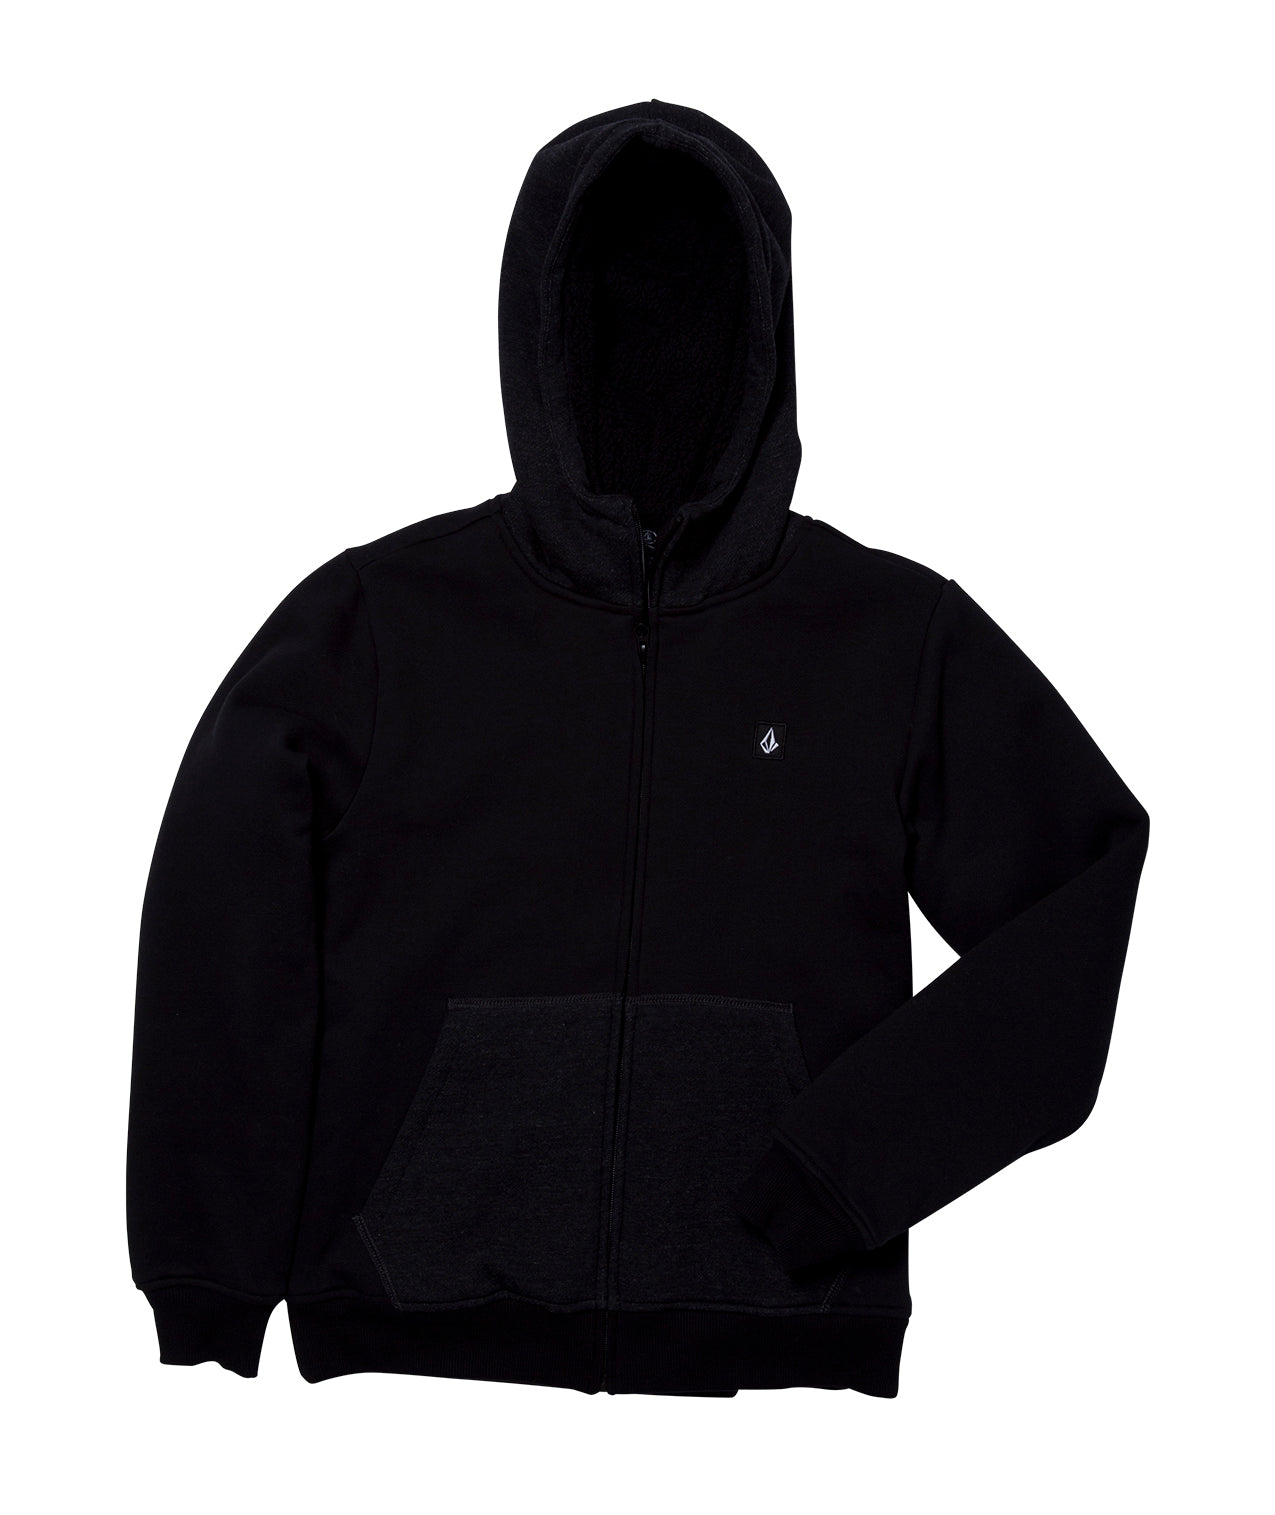 Youth Single Stoned Lined Hoodie Black